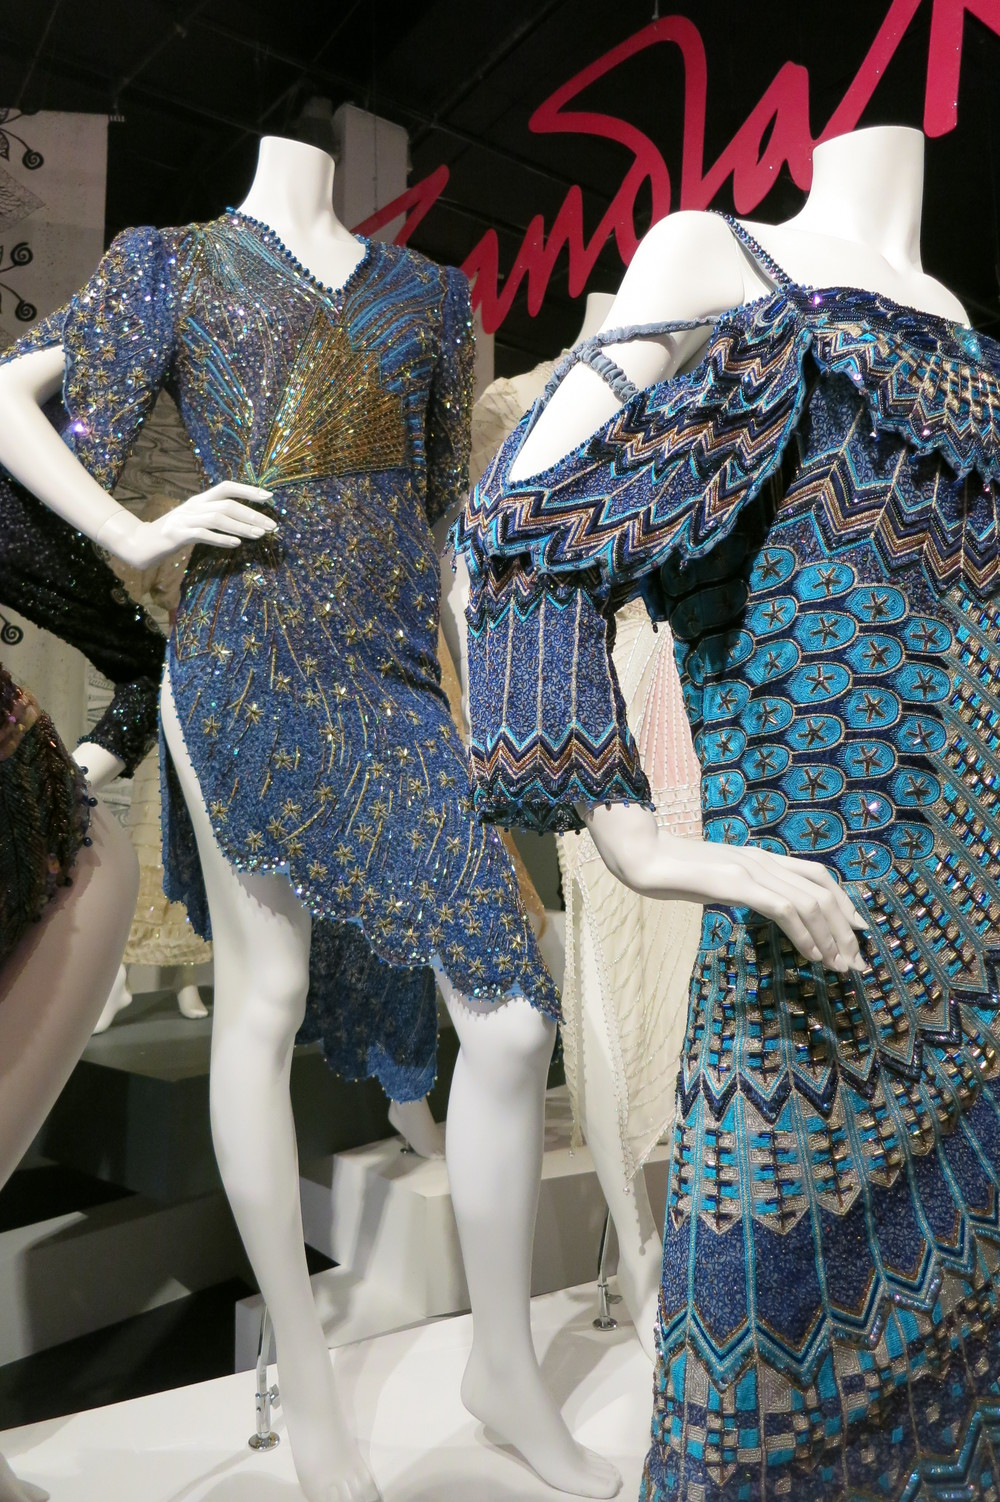 Zandra Rhodes exhibitio at the Fashion & Textile Museum, Bermondsey, London 2013